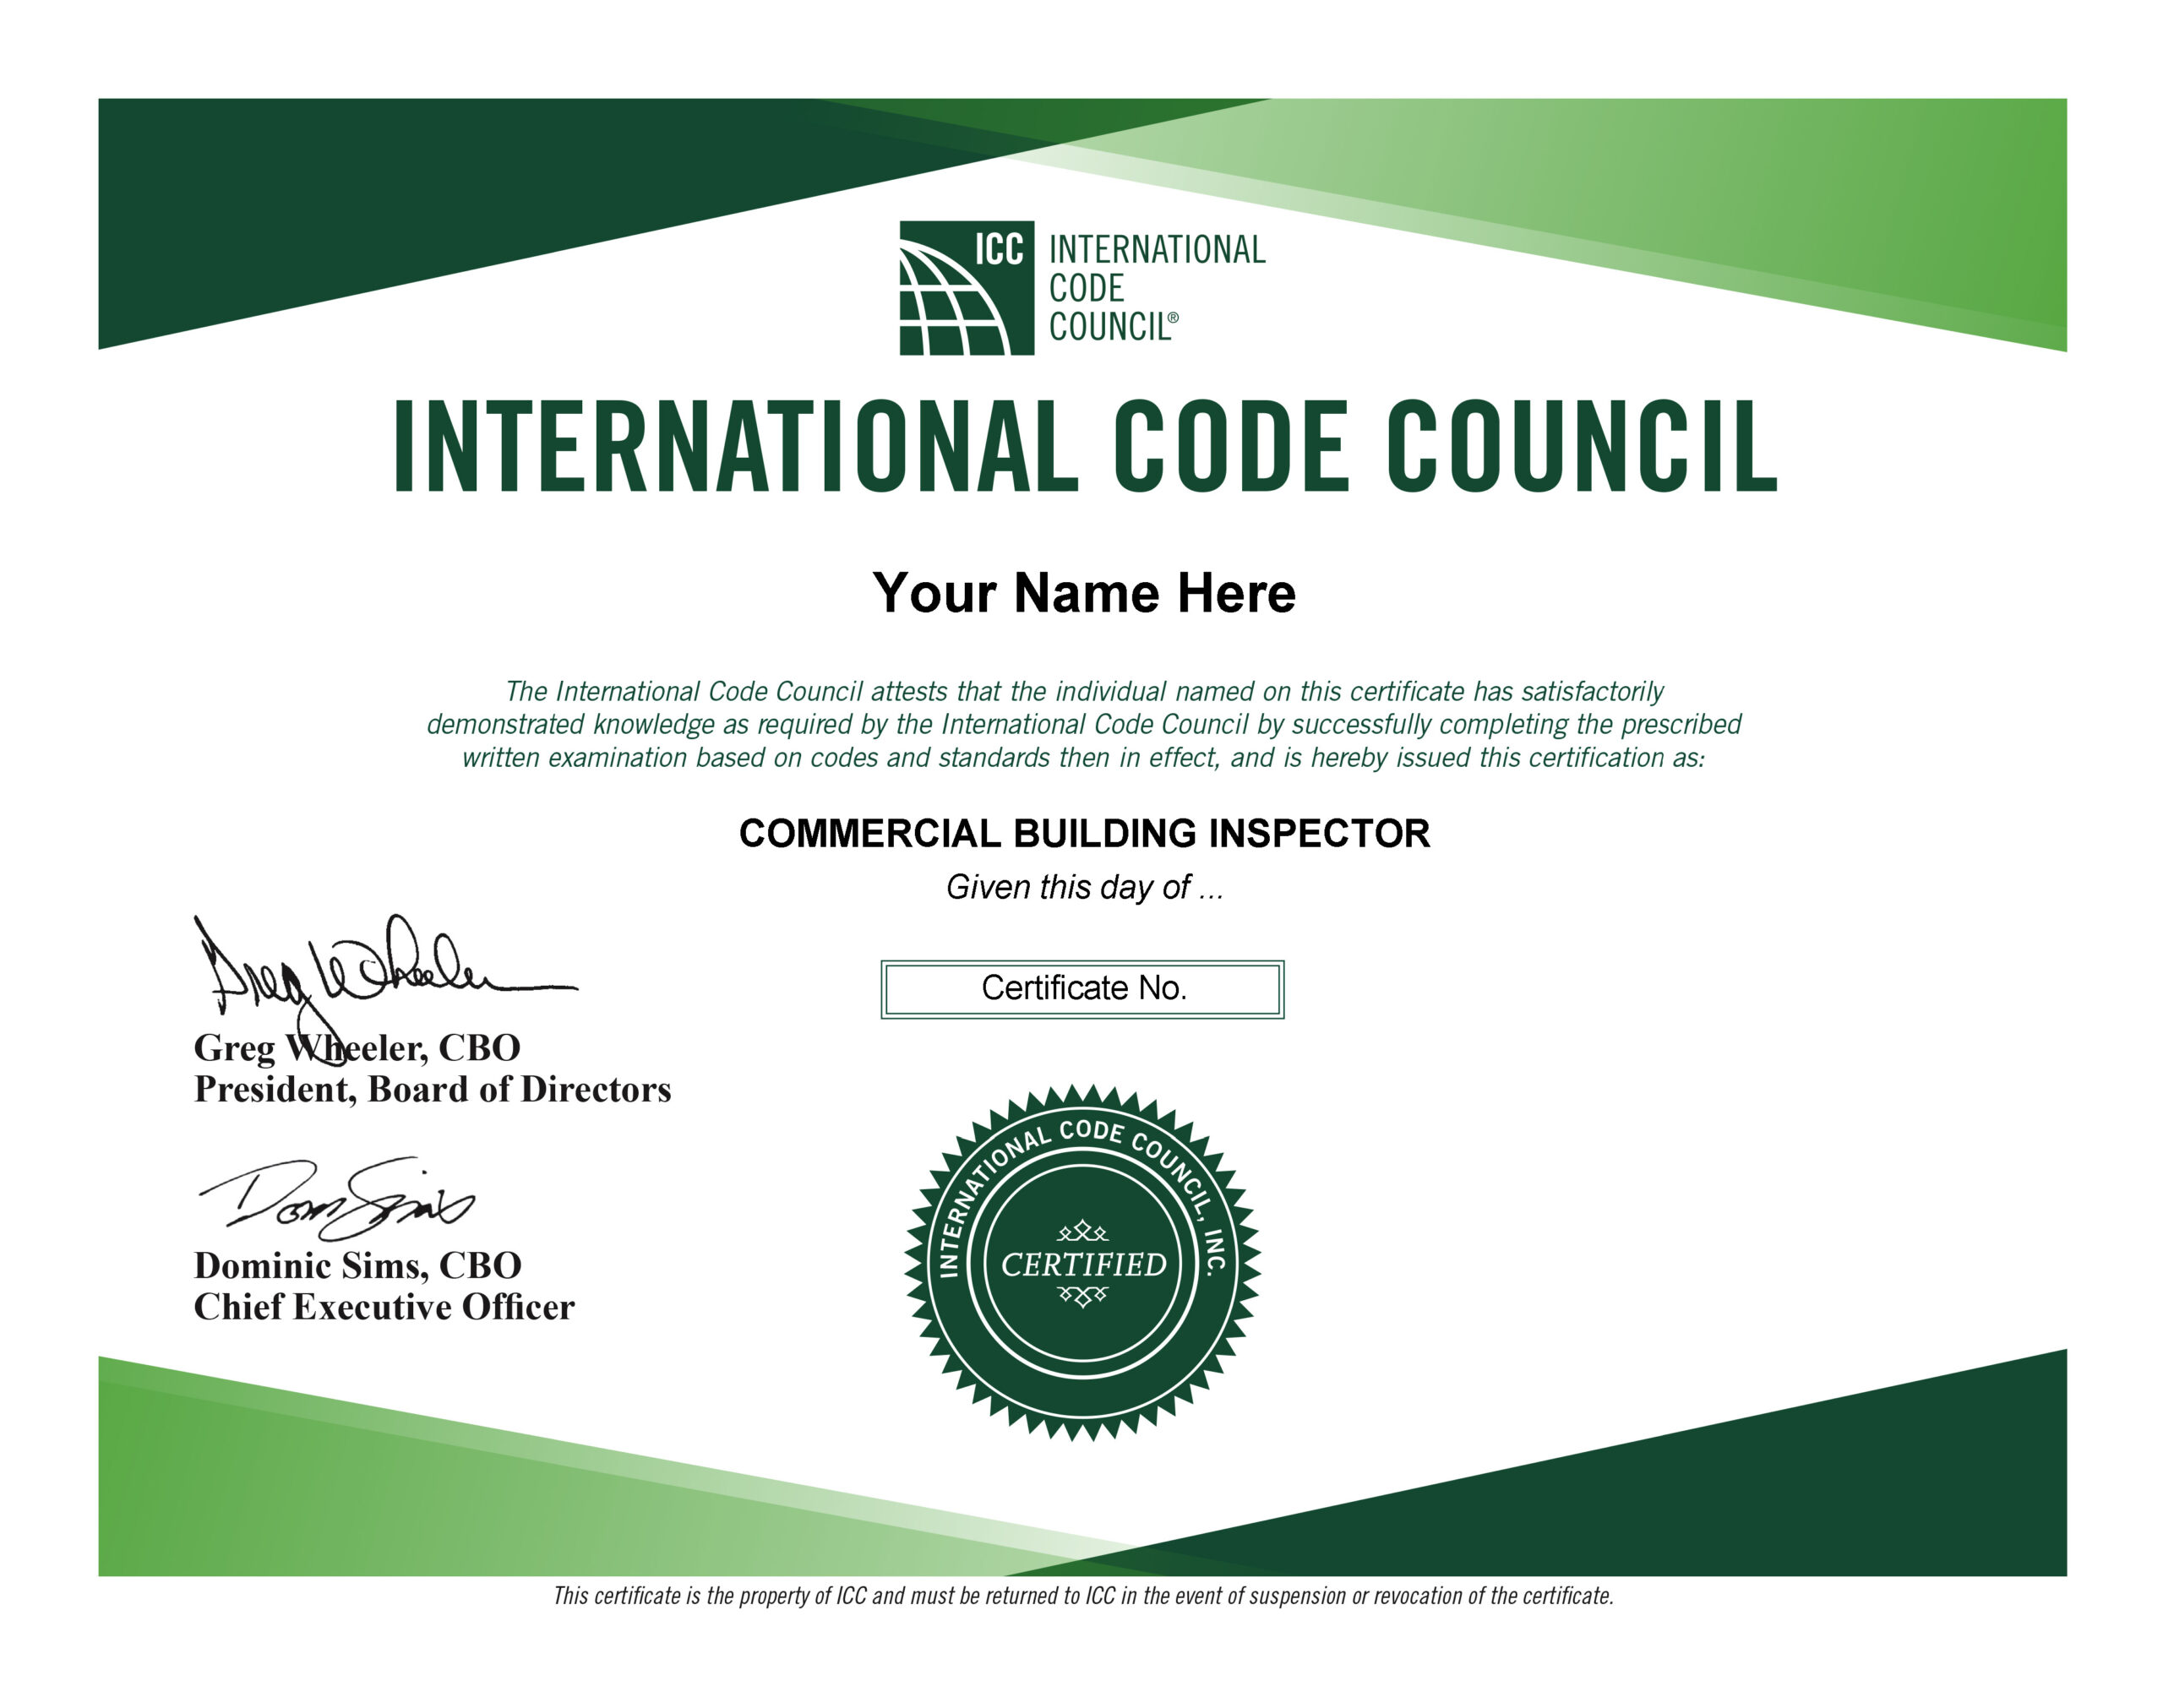 inspector b2 building commercial exam practice prep certificate try why need